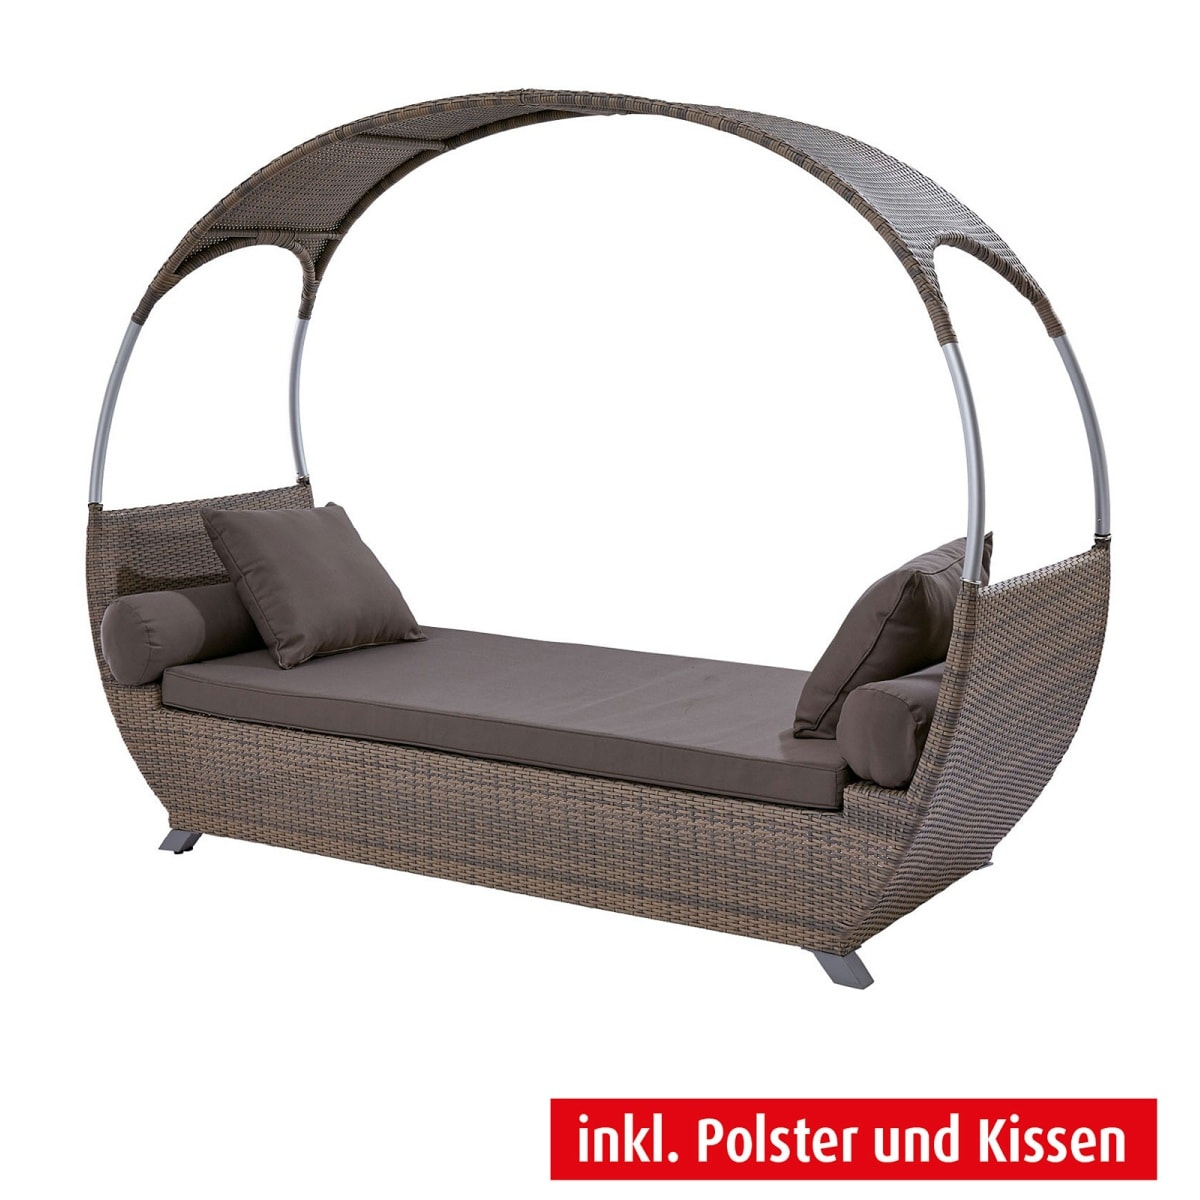 outdoor liege mit dach peru braungrau mit polster porta. Black Bedroom Furniture Sets. Home Design Ideas